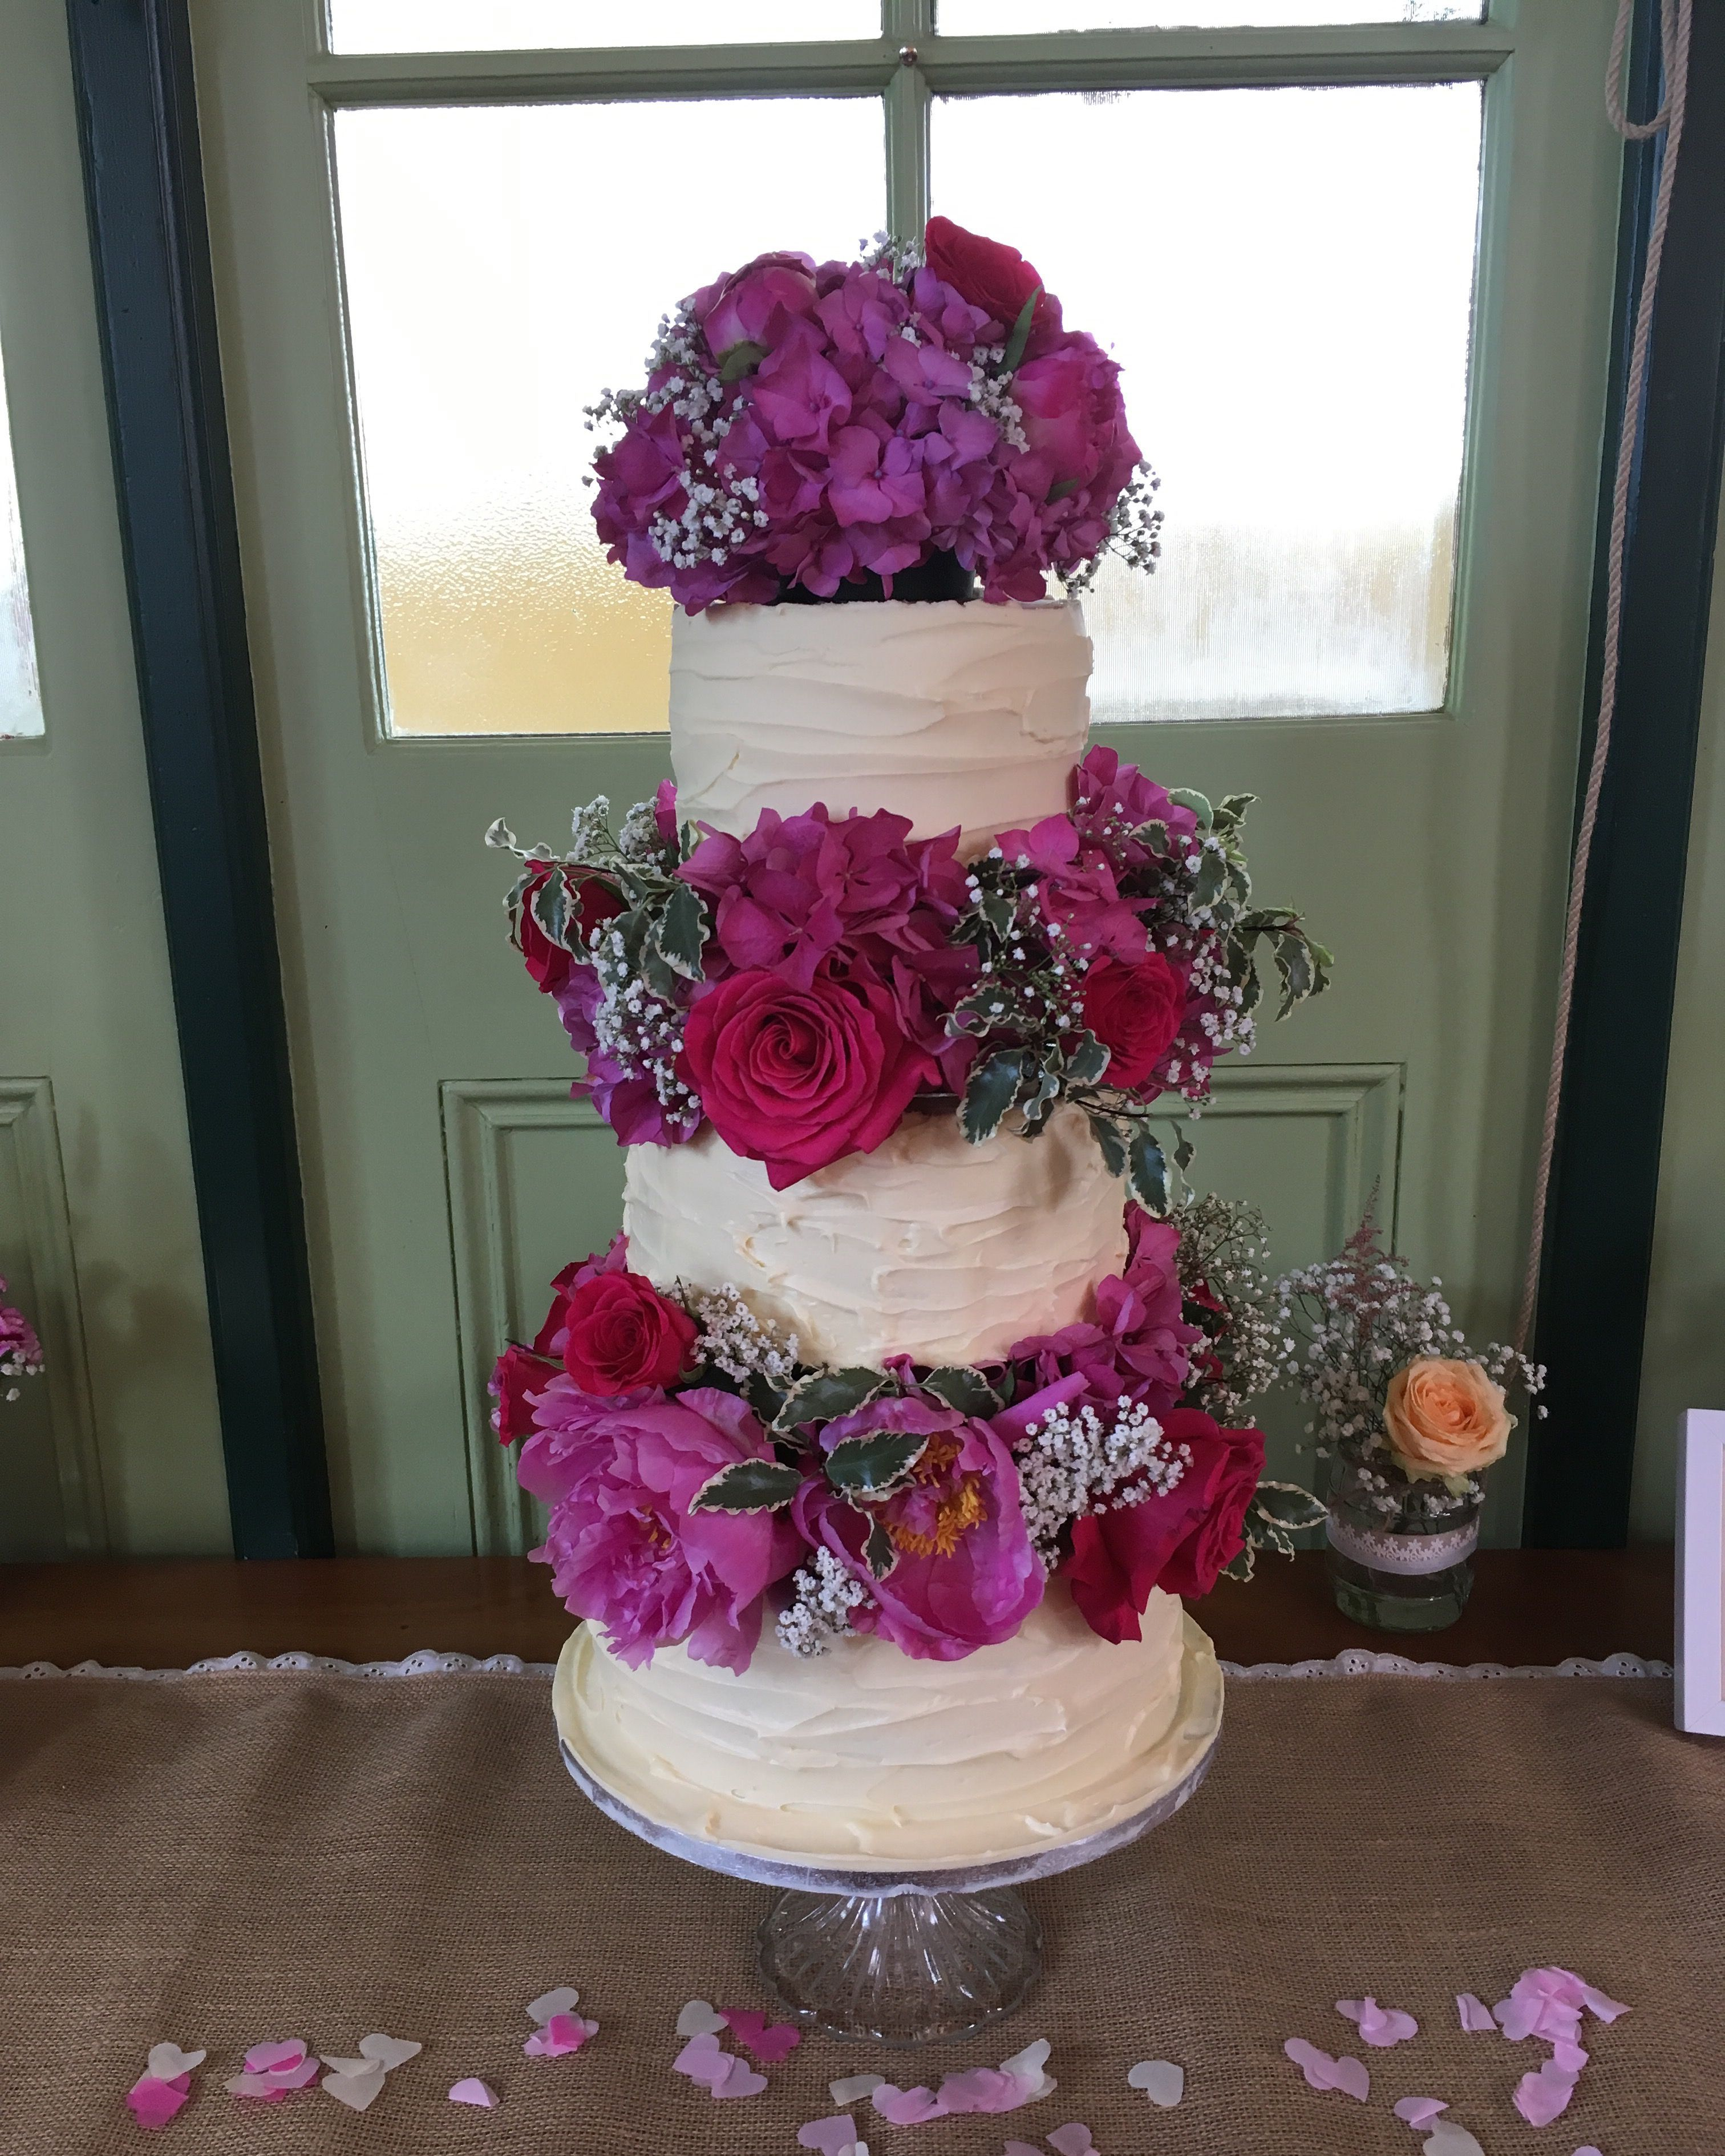 Pin on Wedding Cakes - Silver Rose Bakery